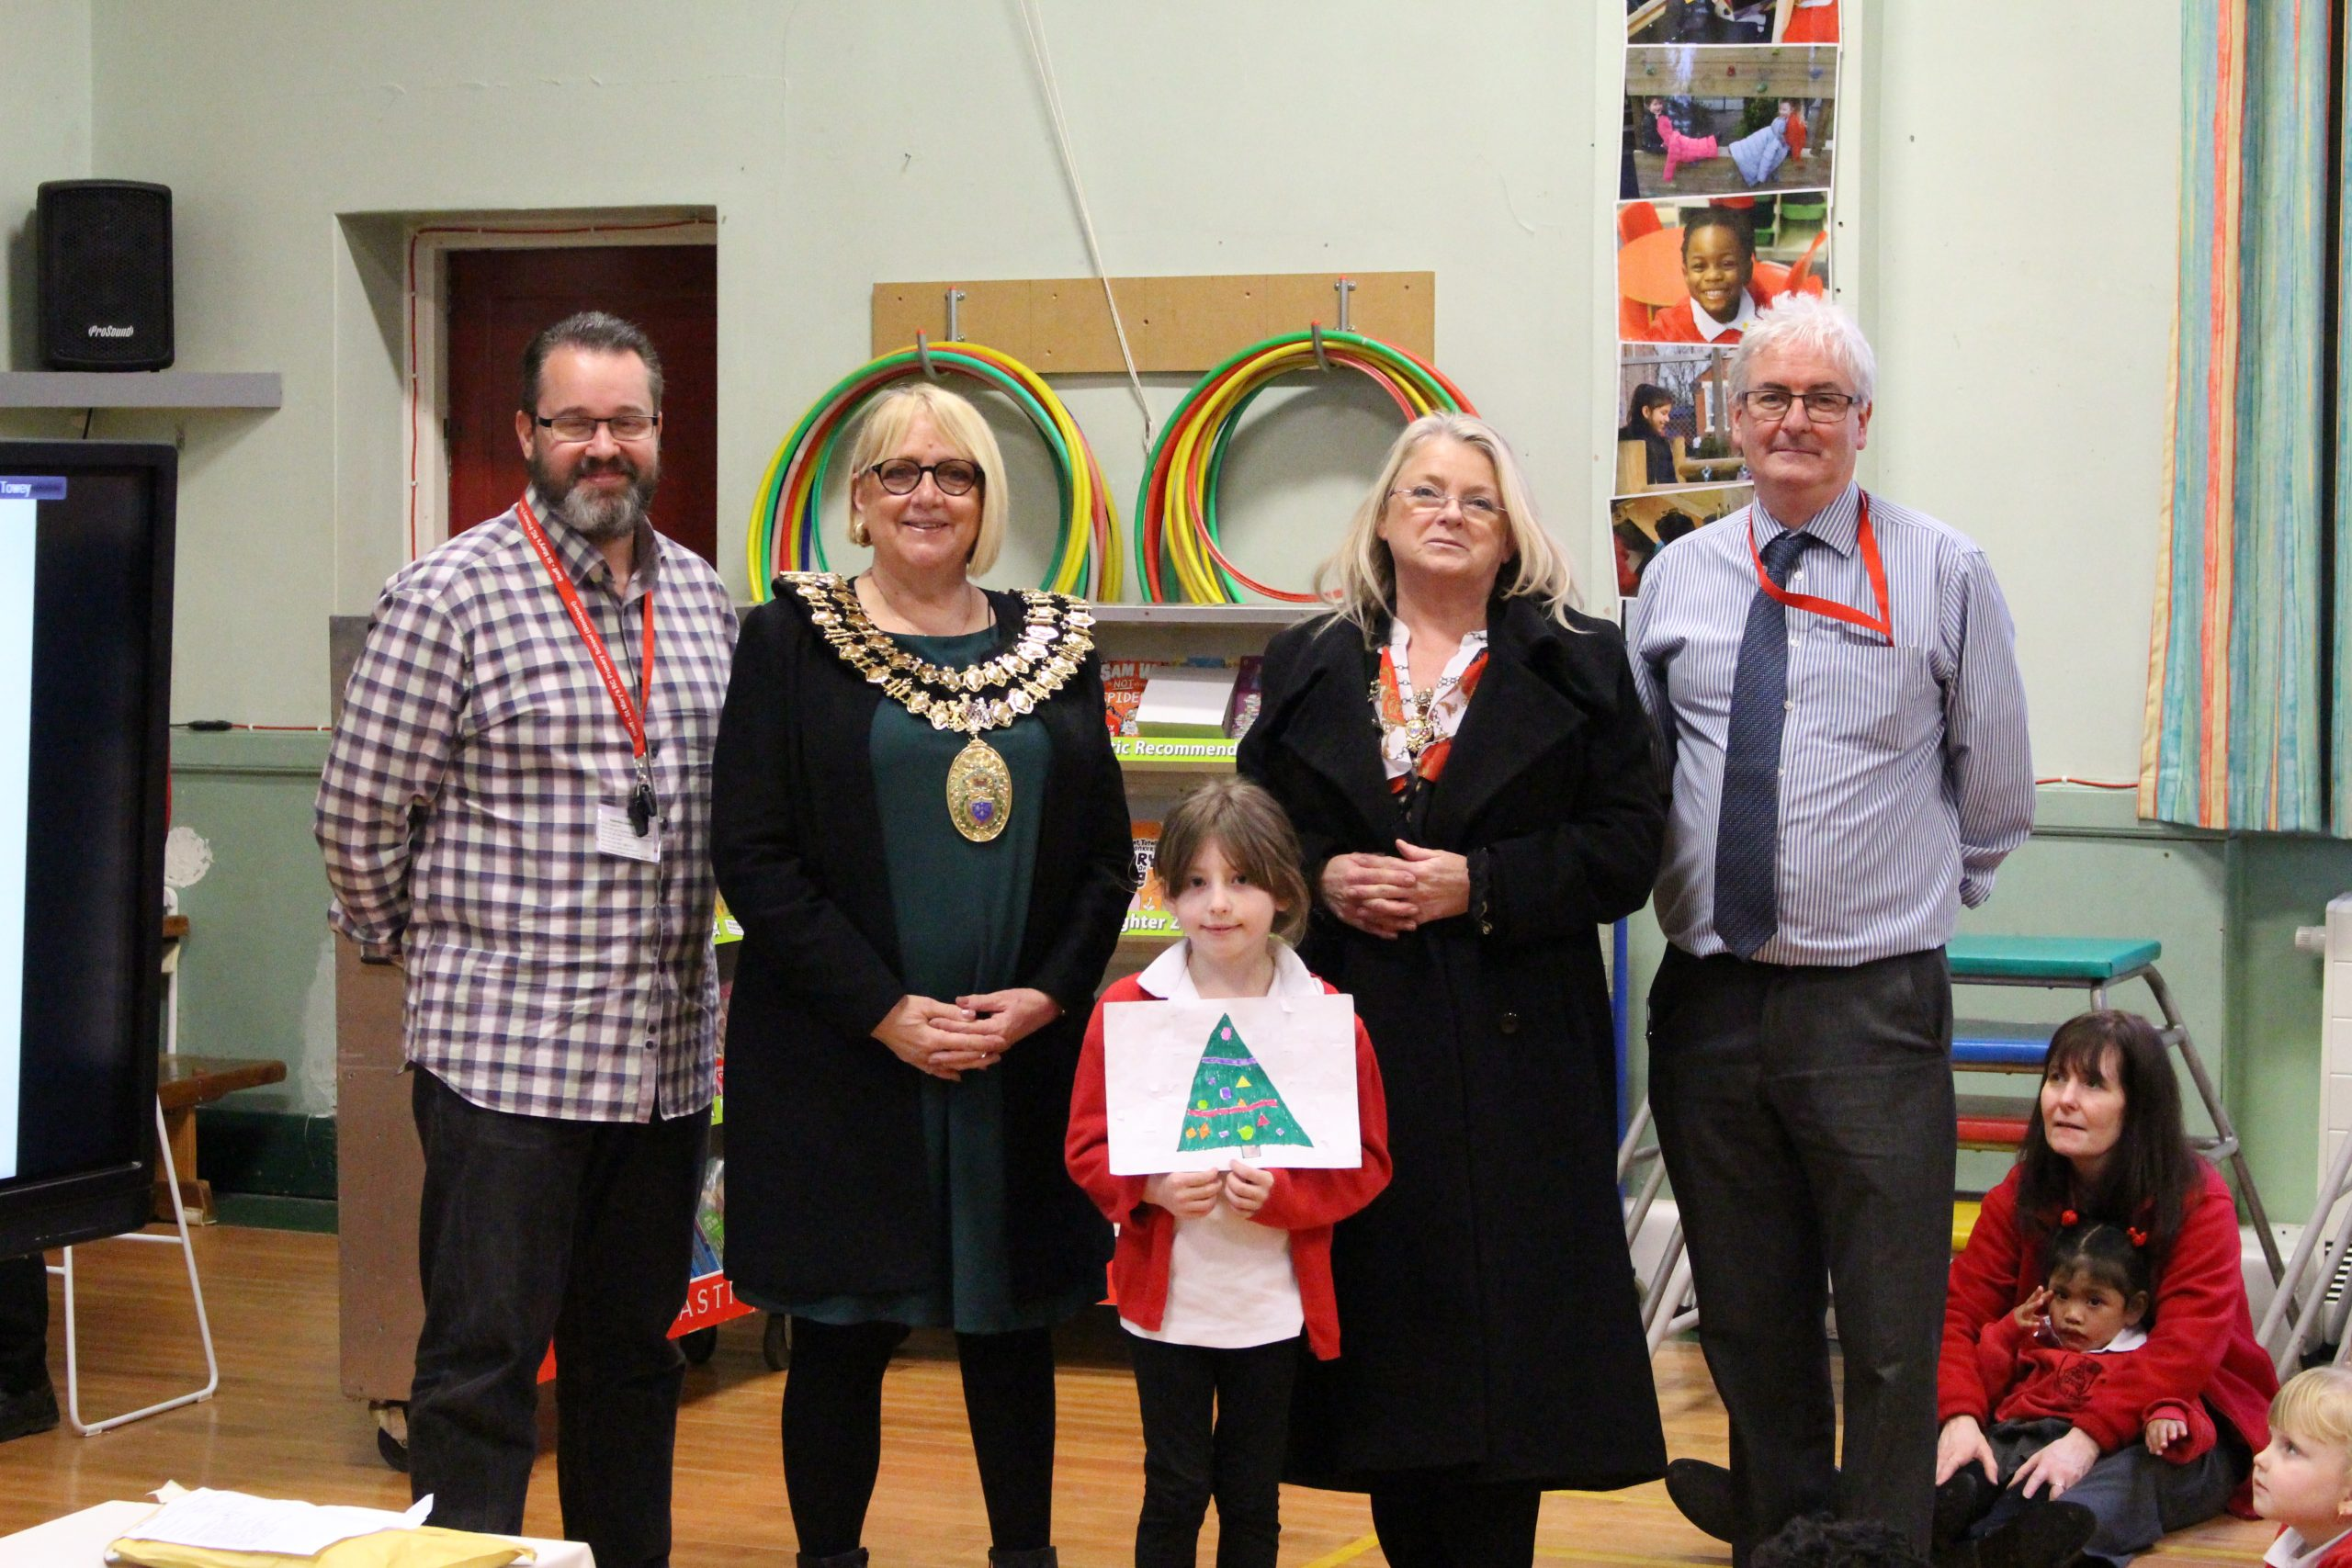 school prize winner with the mayor